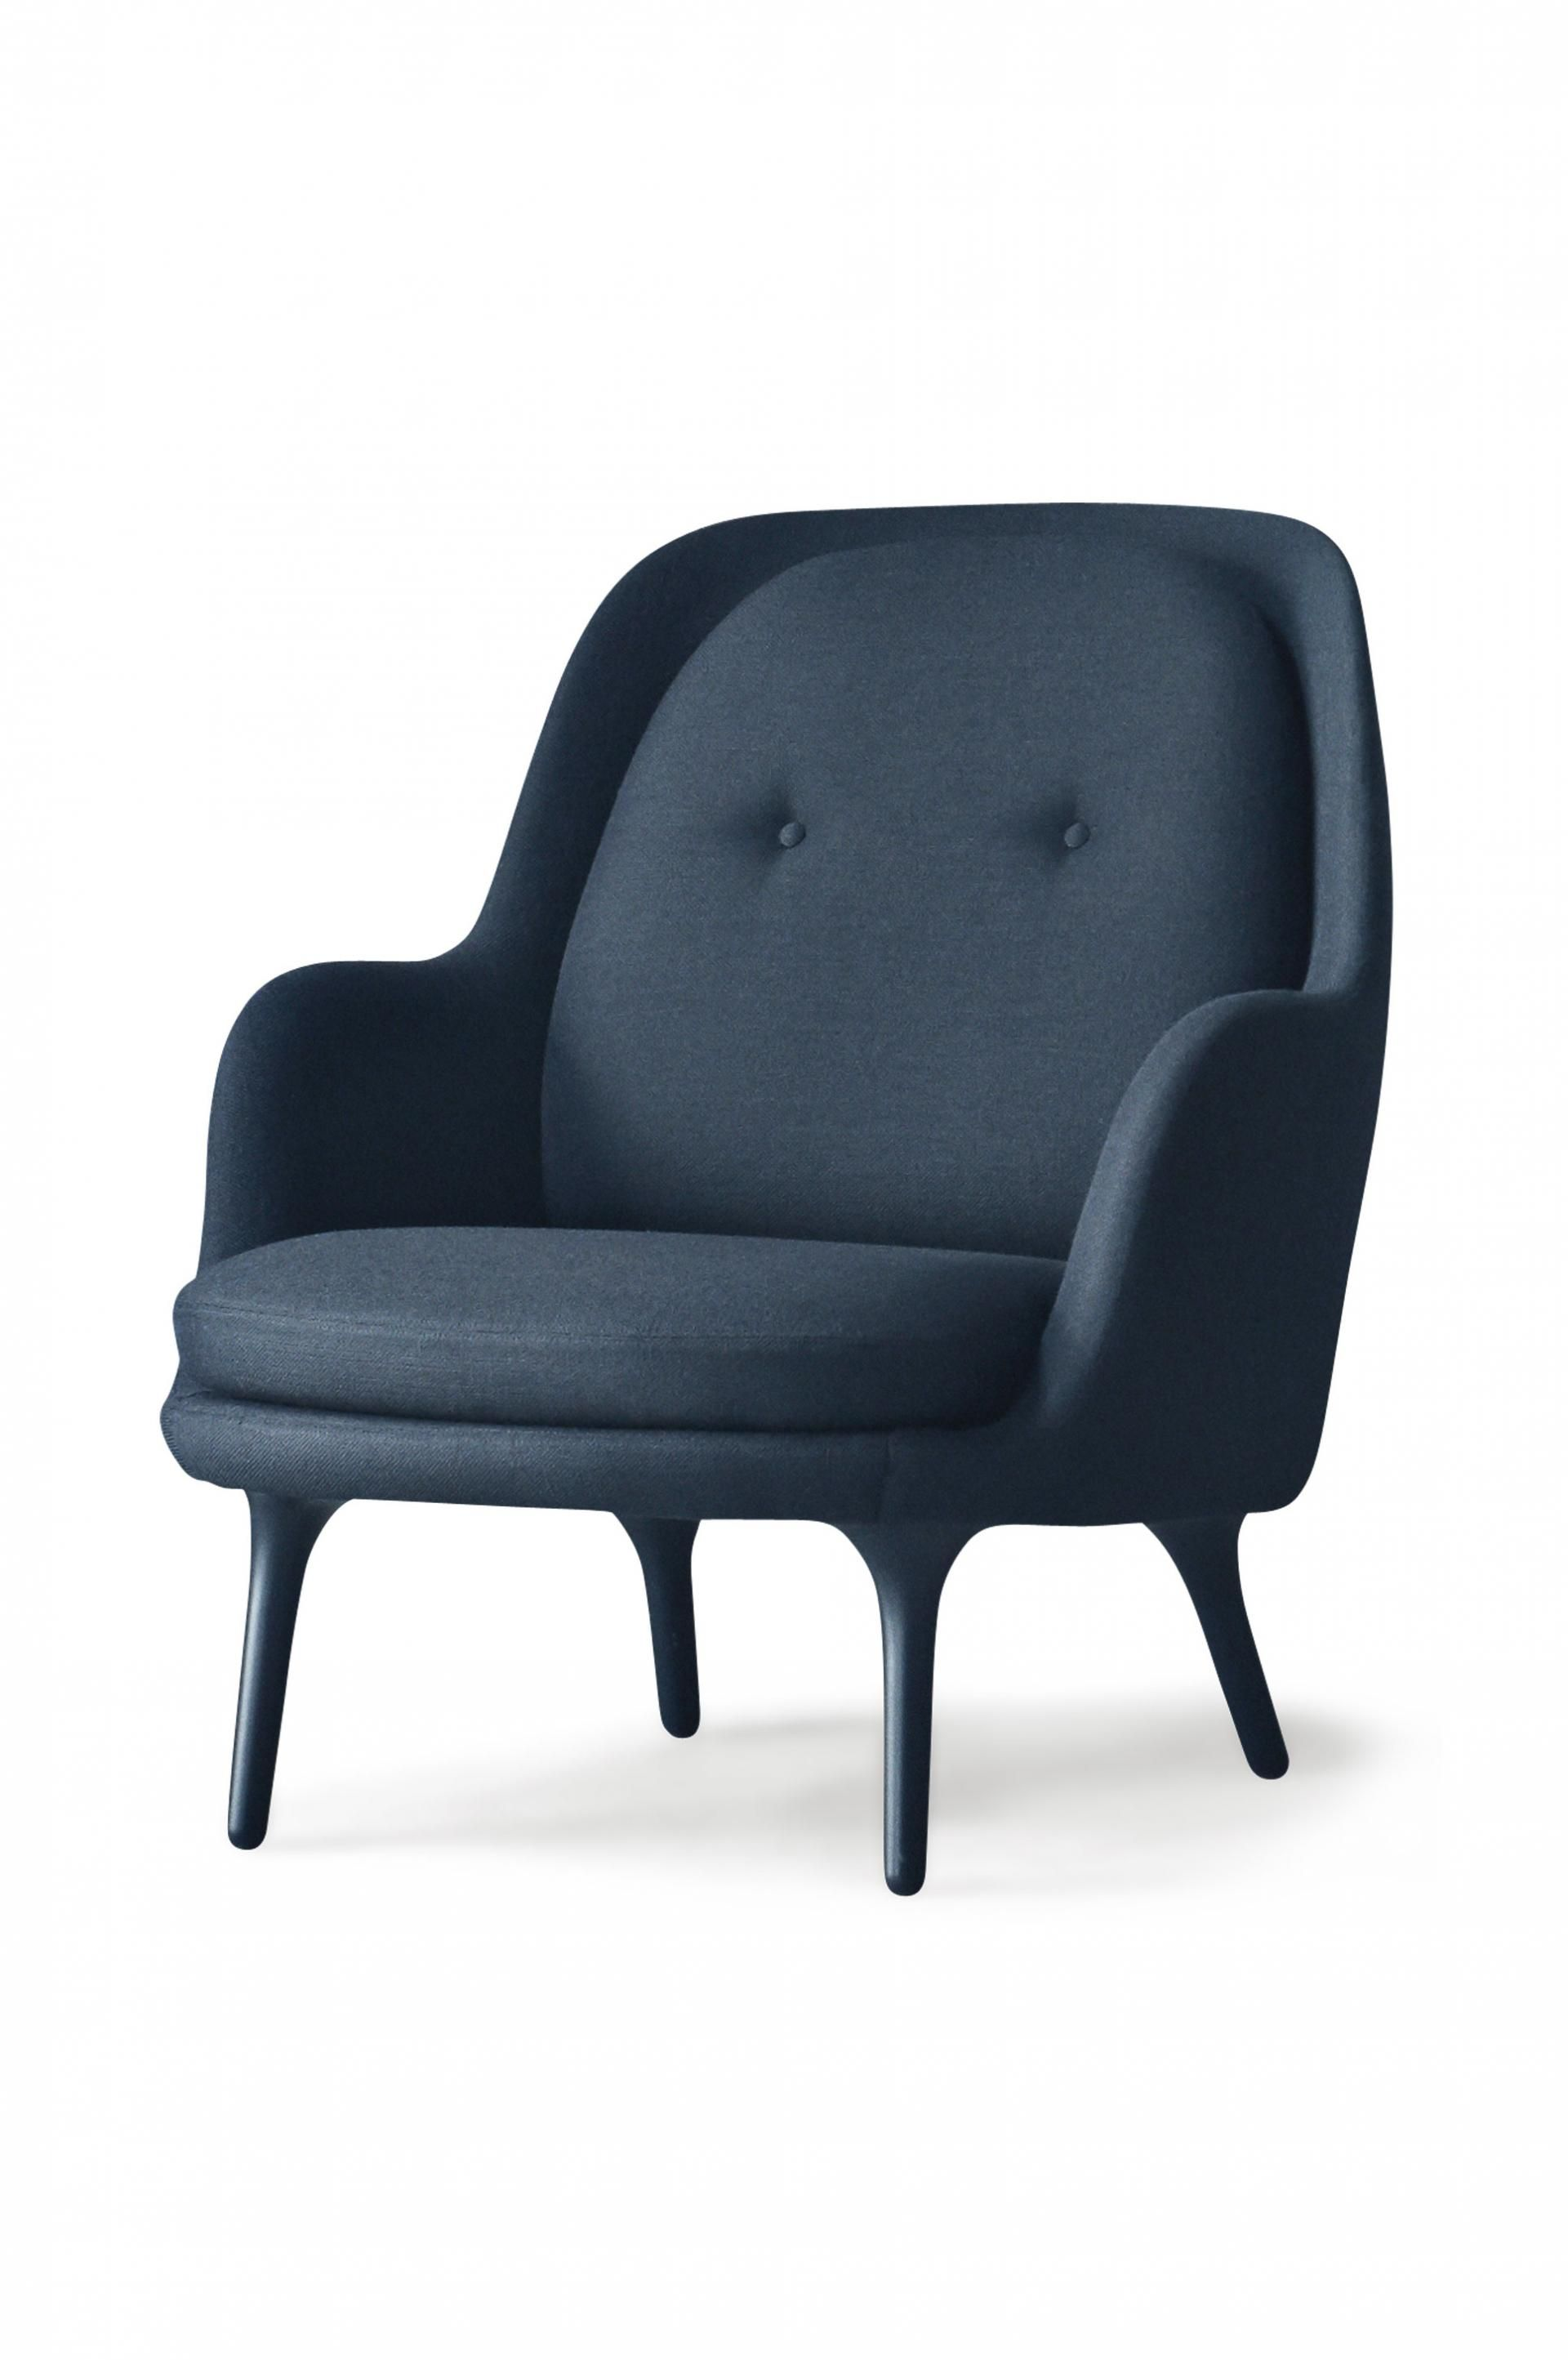 cheap single sofa chair velvet chesterfield fritz hansen quotfri quot armchair product furnishings